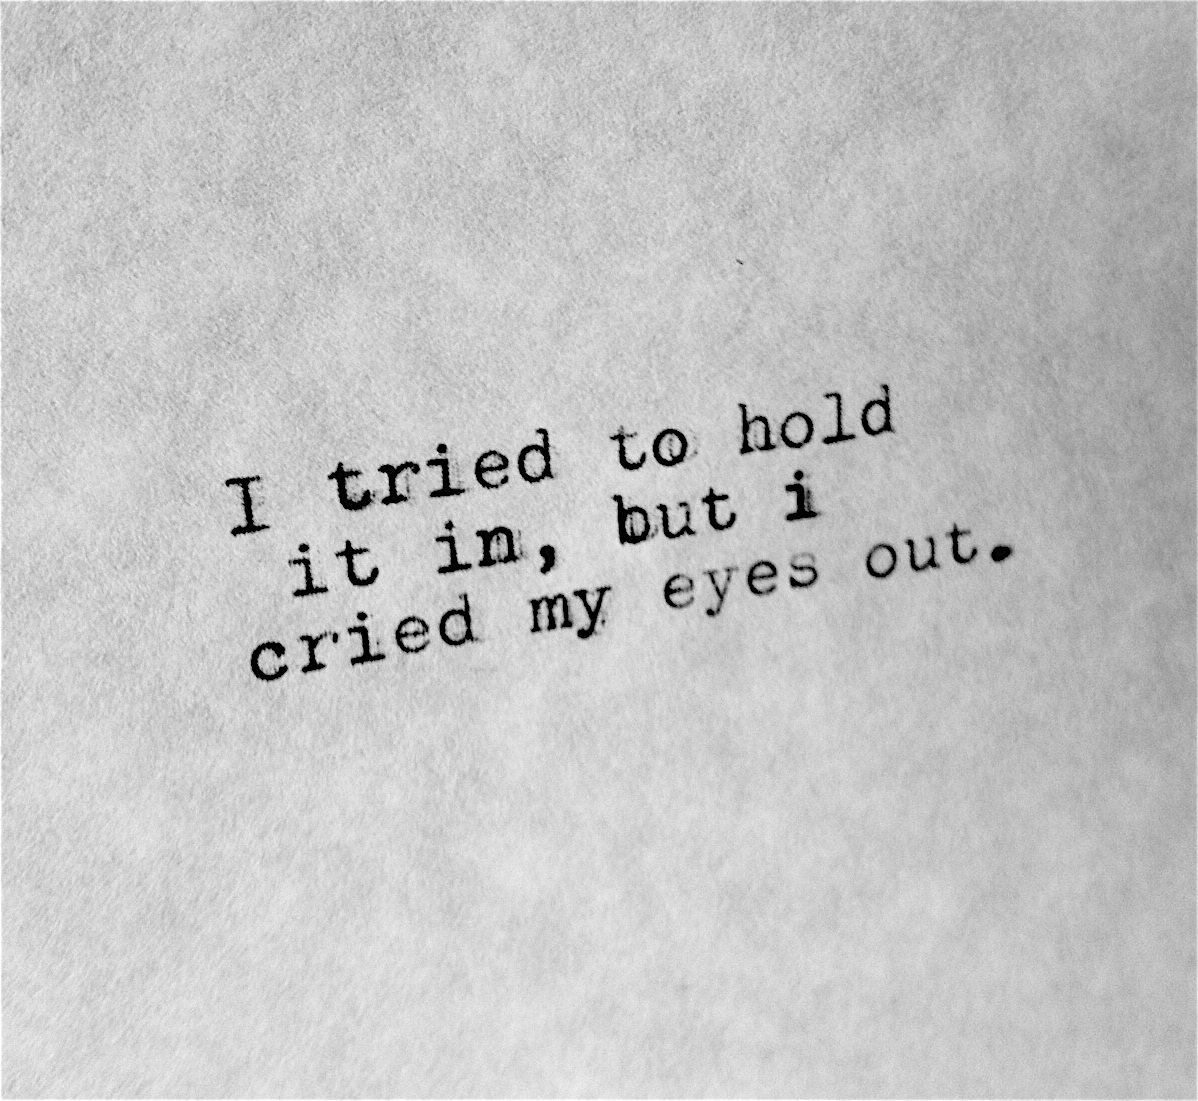 Sad Crying Images With Quotes: 30+ Best Collection Of Sad Crying Quotes